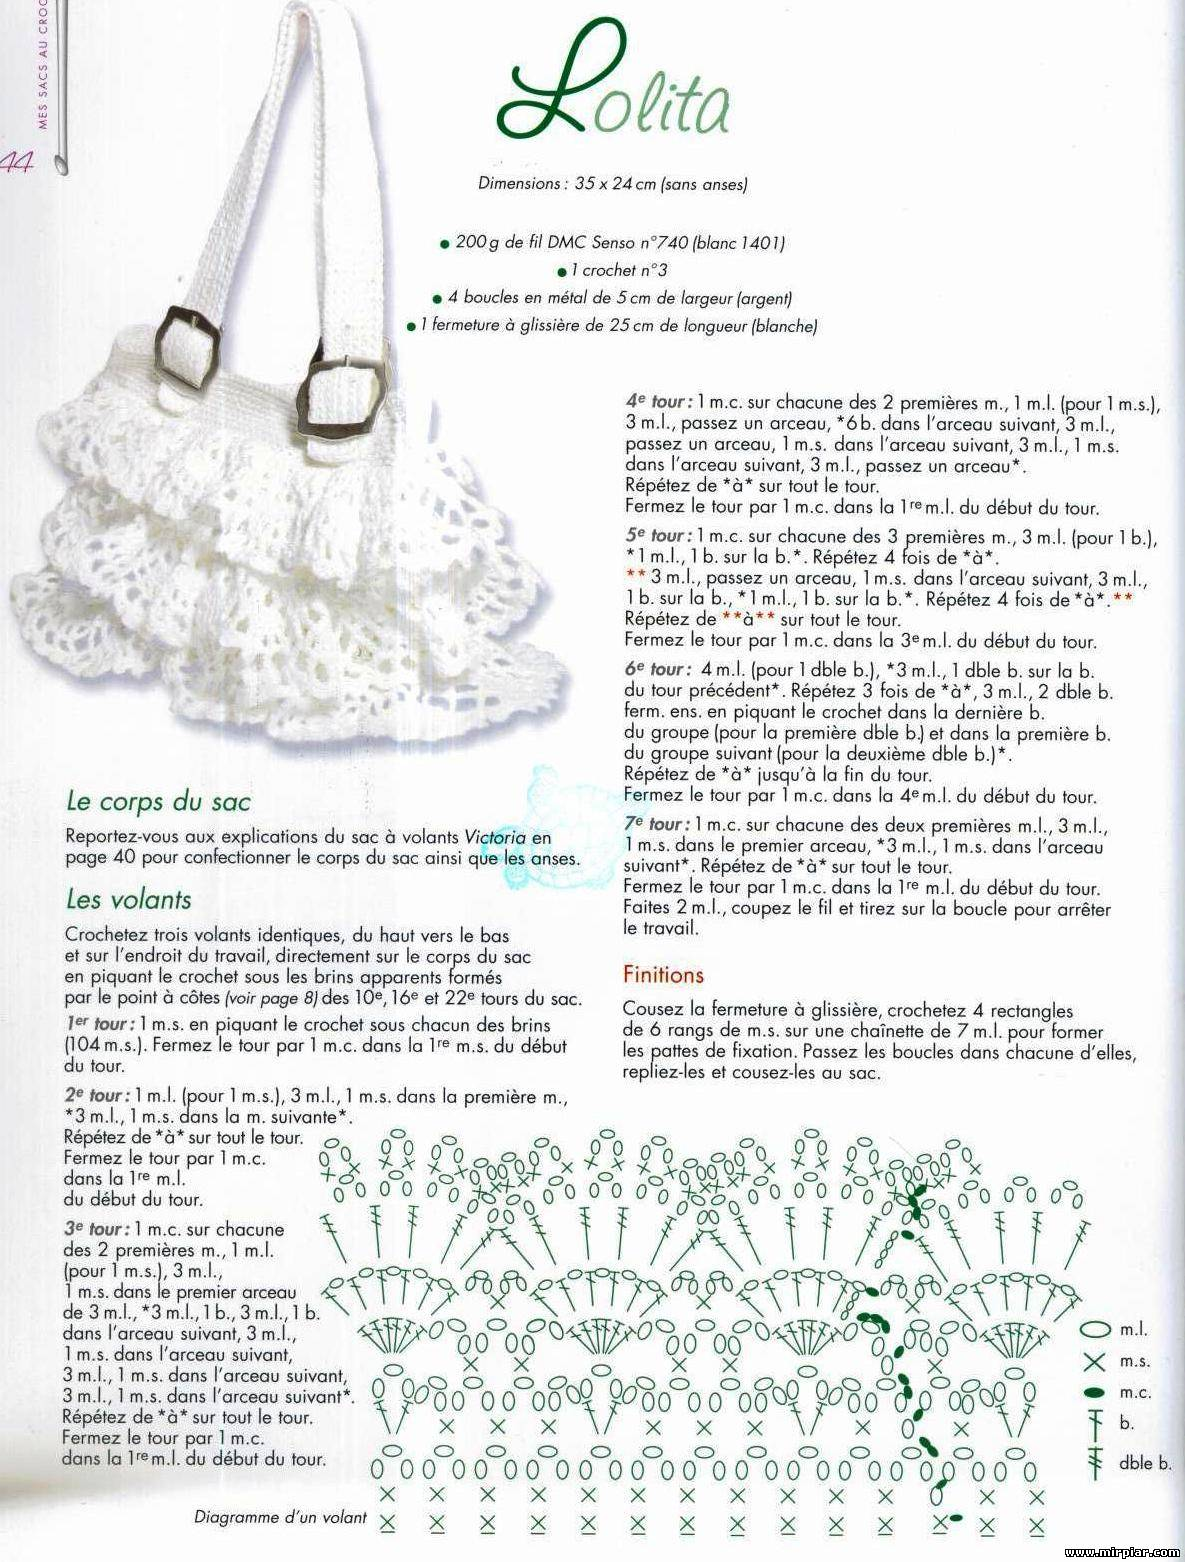 NezumiWorld Blog: Recycled Plastic Bag Crochet Patterns - Little Bowls